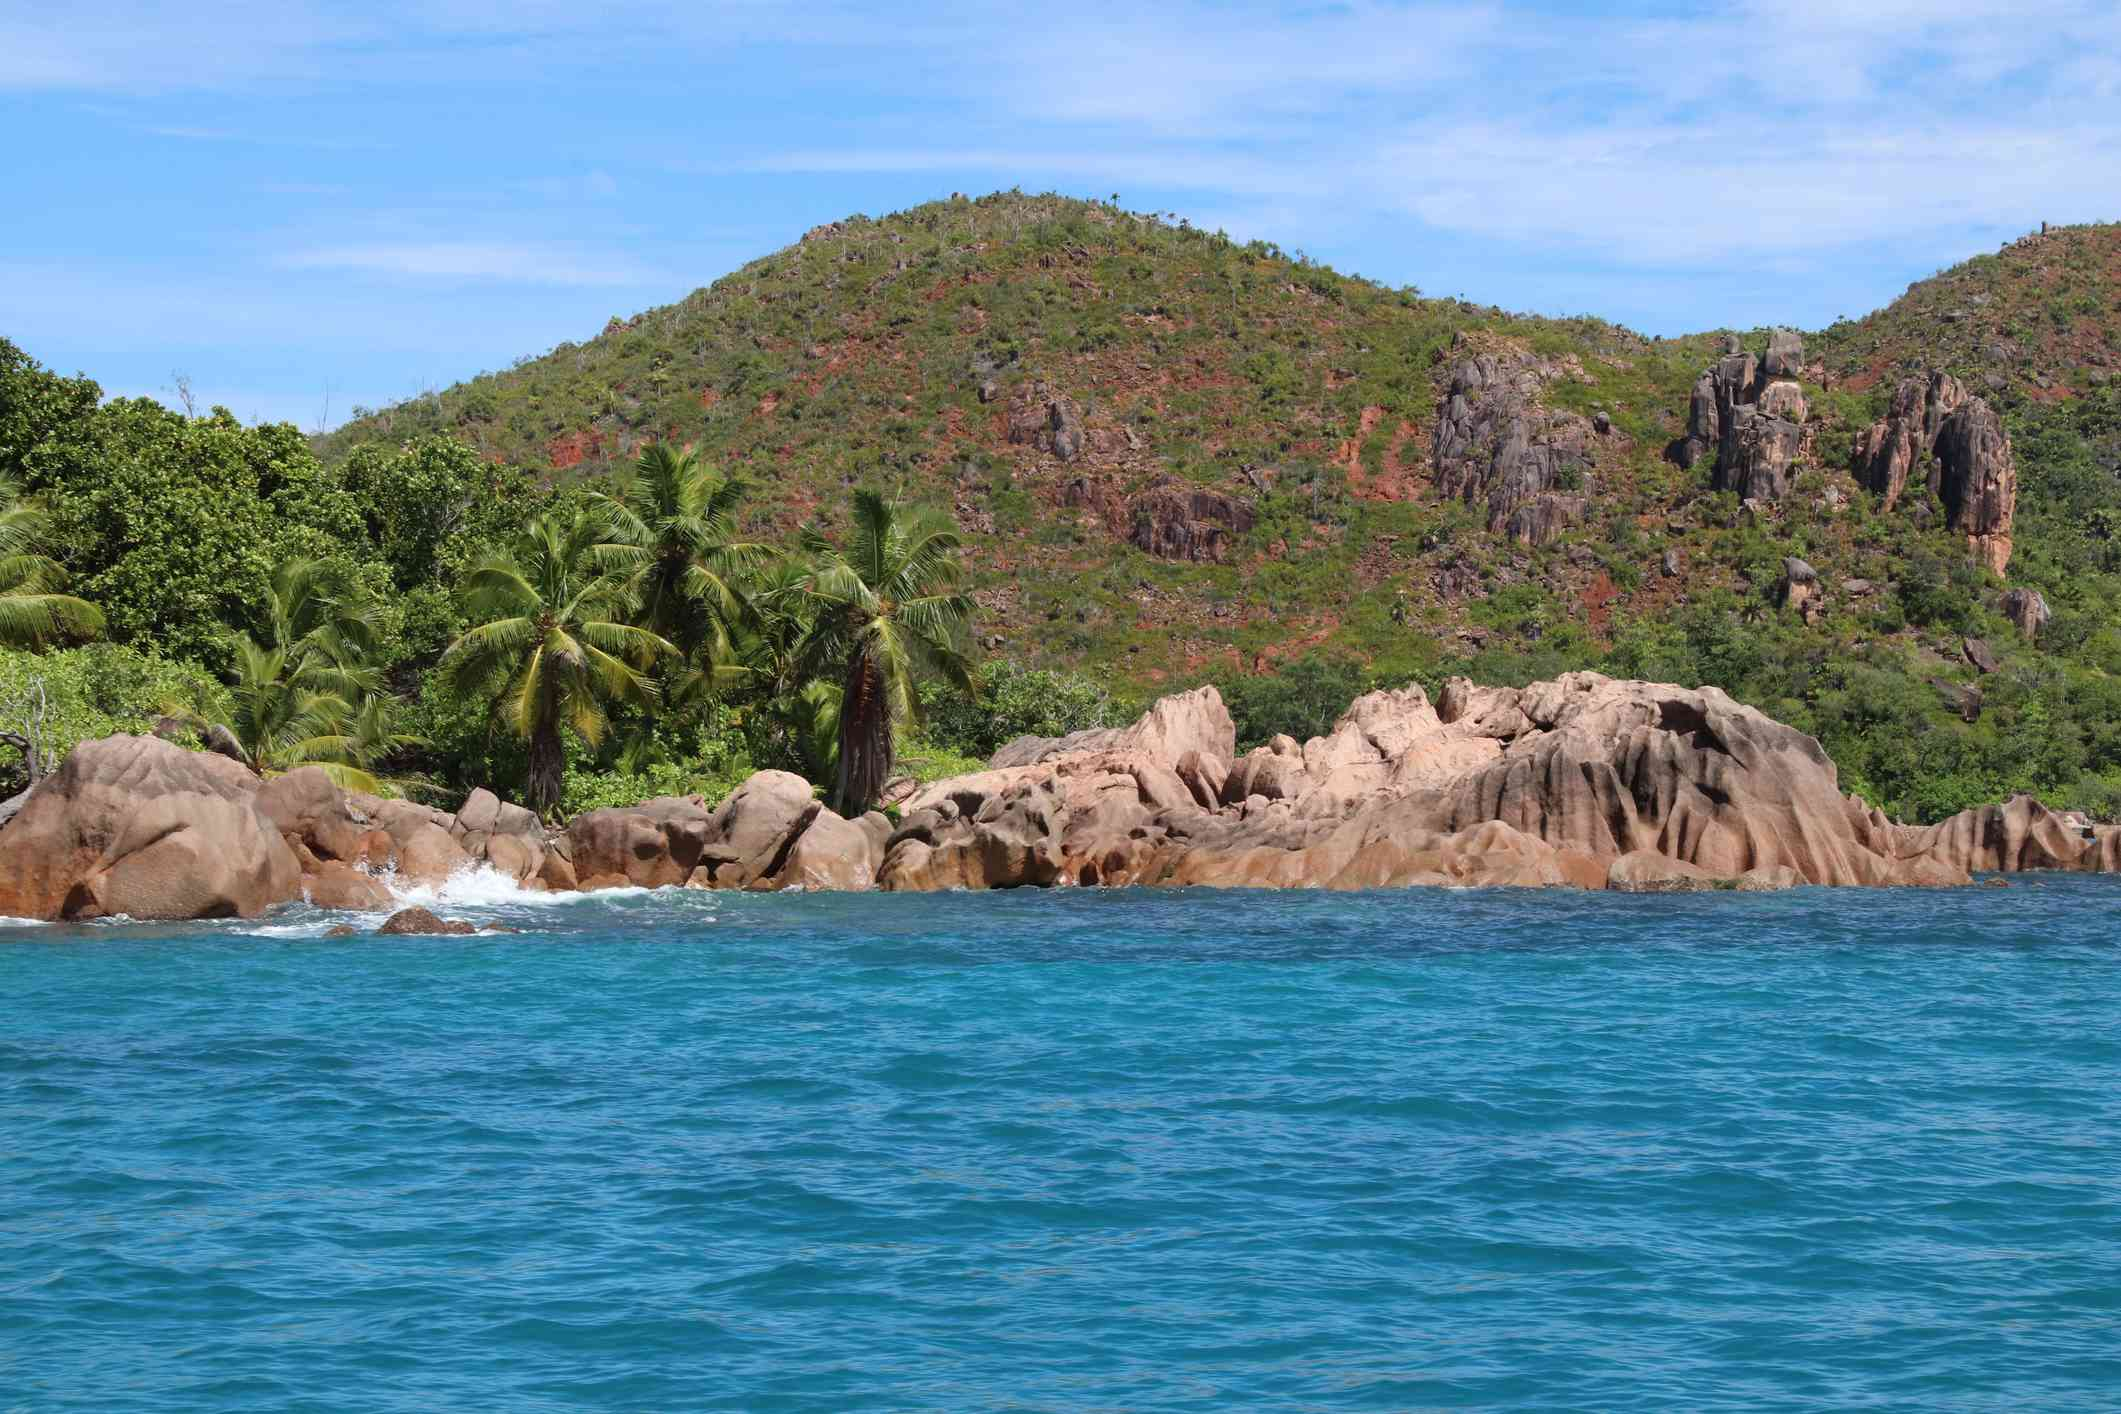 Red Granite Rocks at Beach close Old Turtle Pond and Laraie Bay at Curieuse Island, Seychelles,